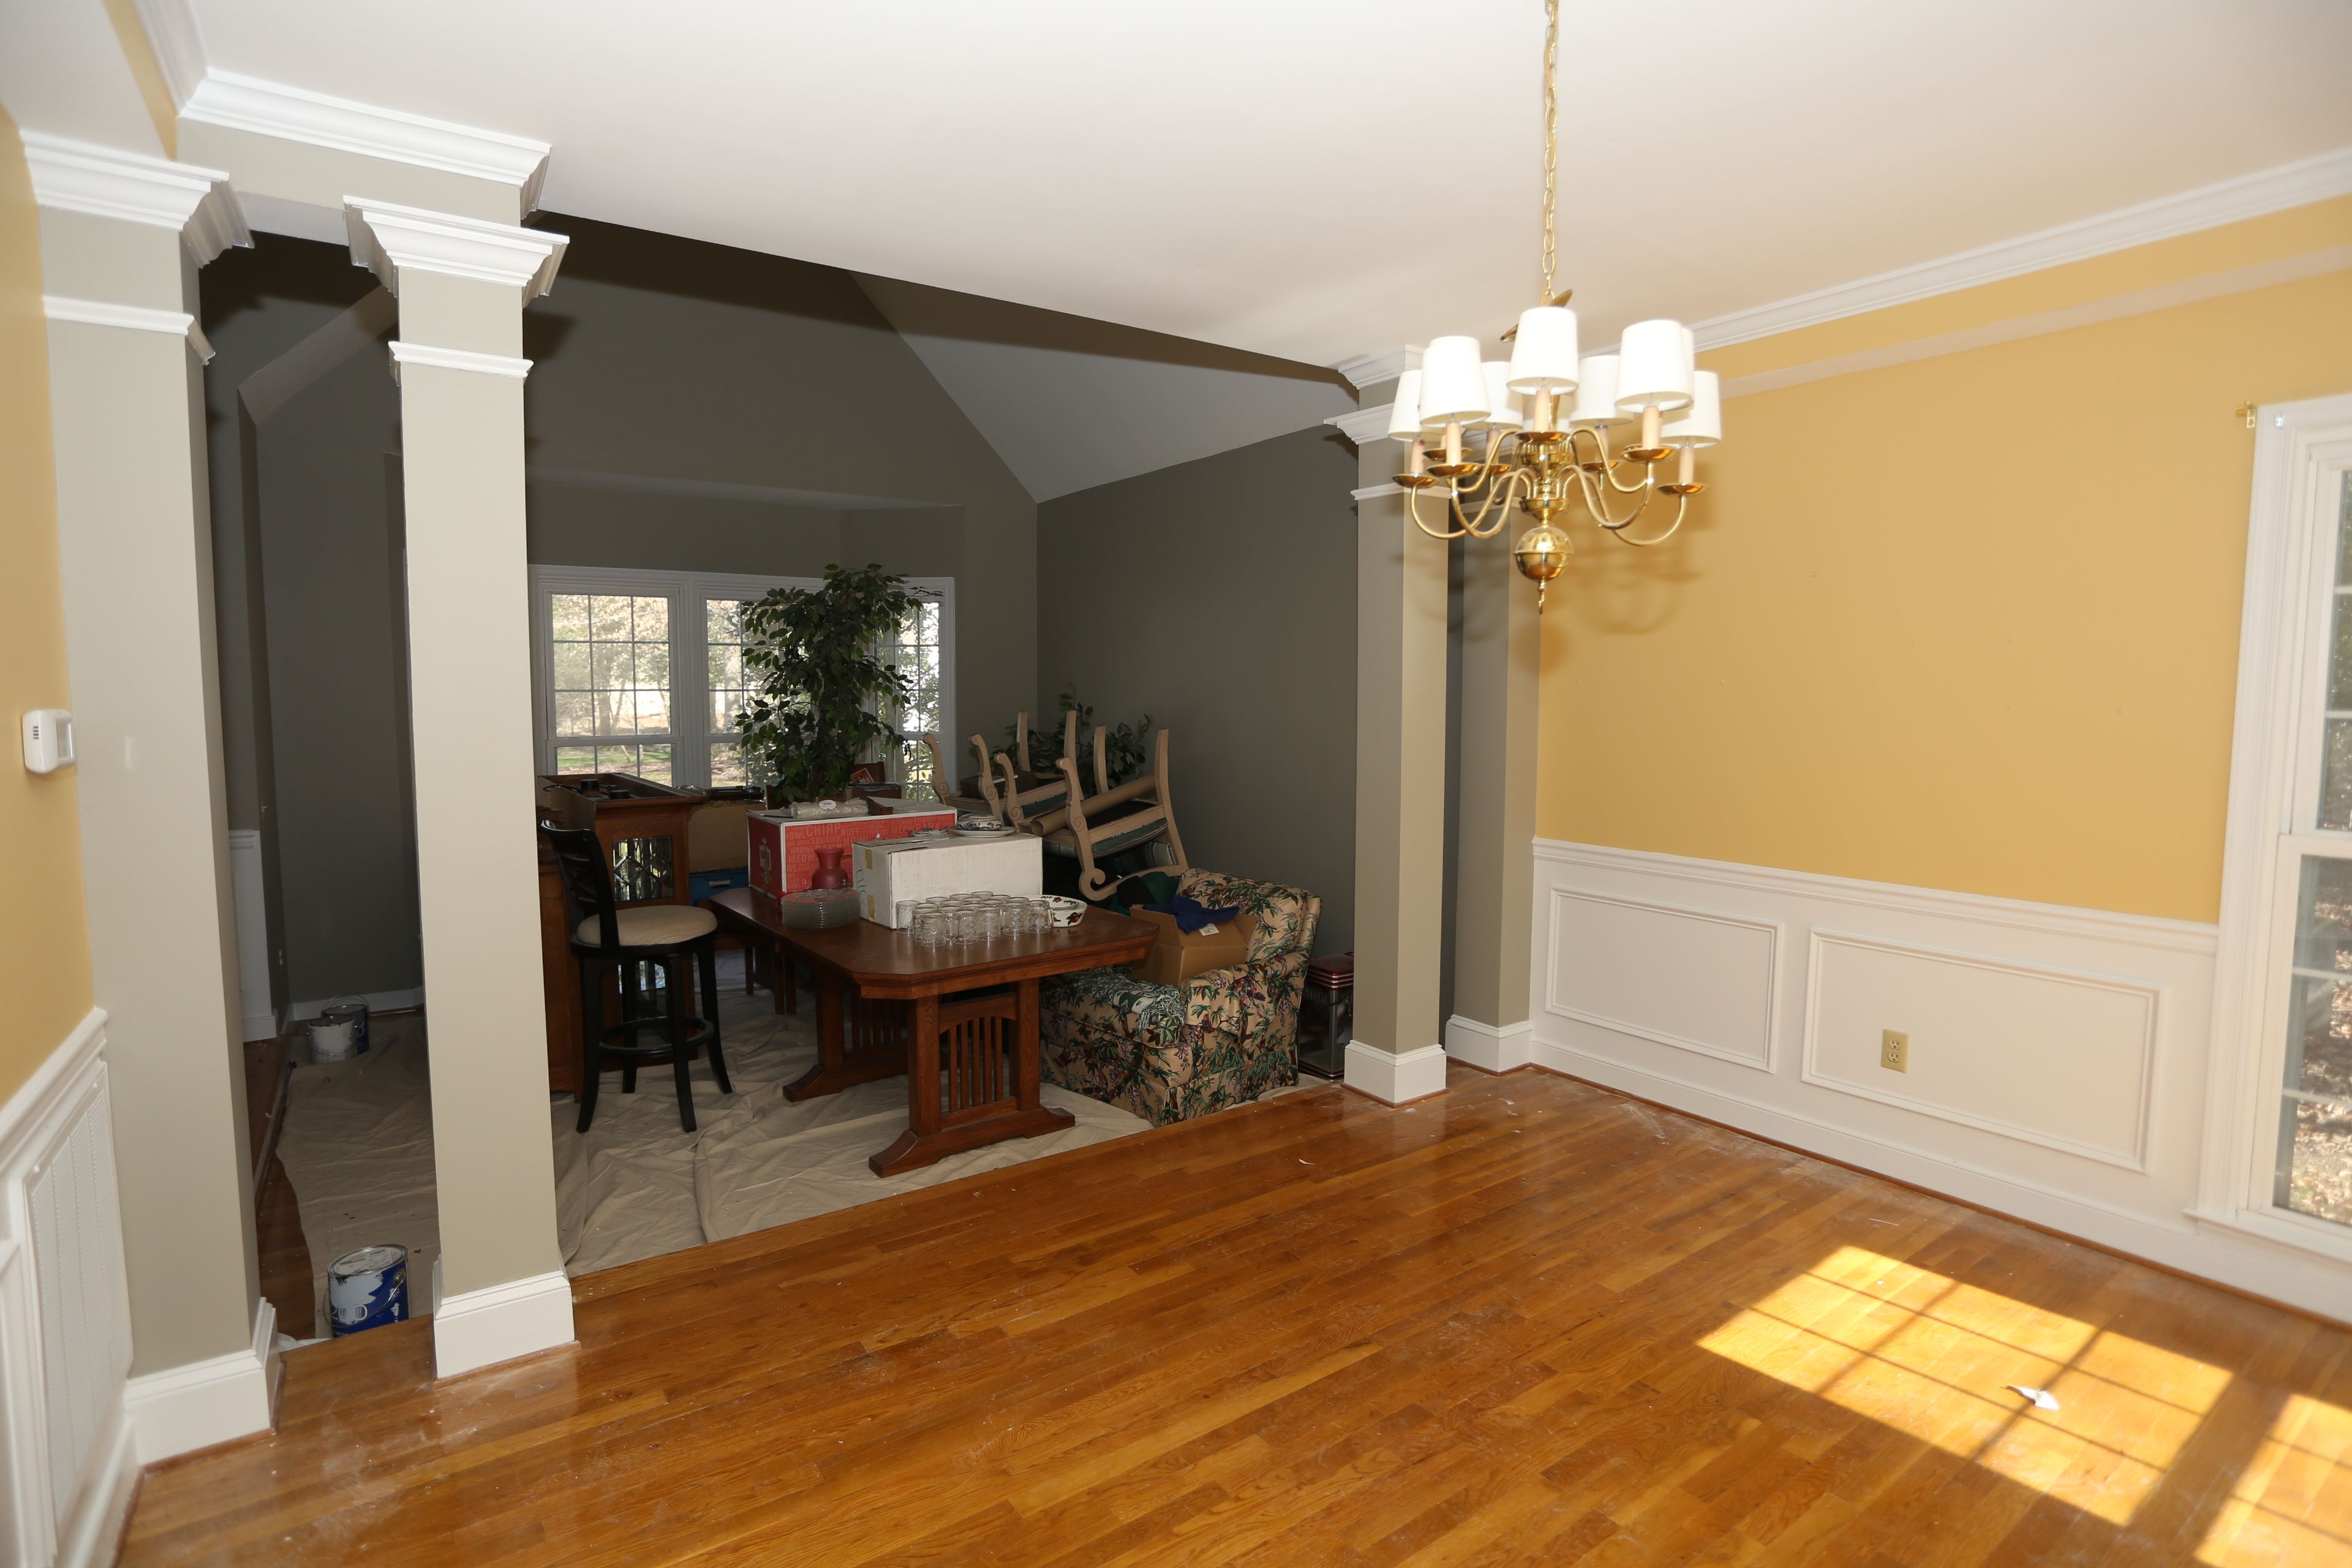 dining room repainted bm concord ivory sw gateway gray on walls